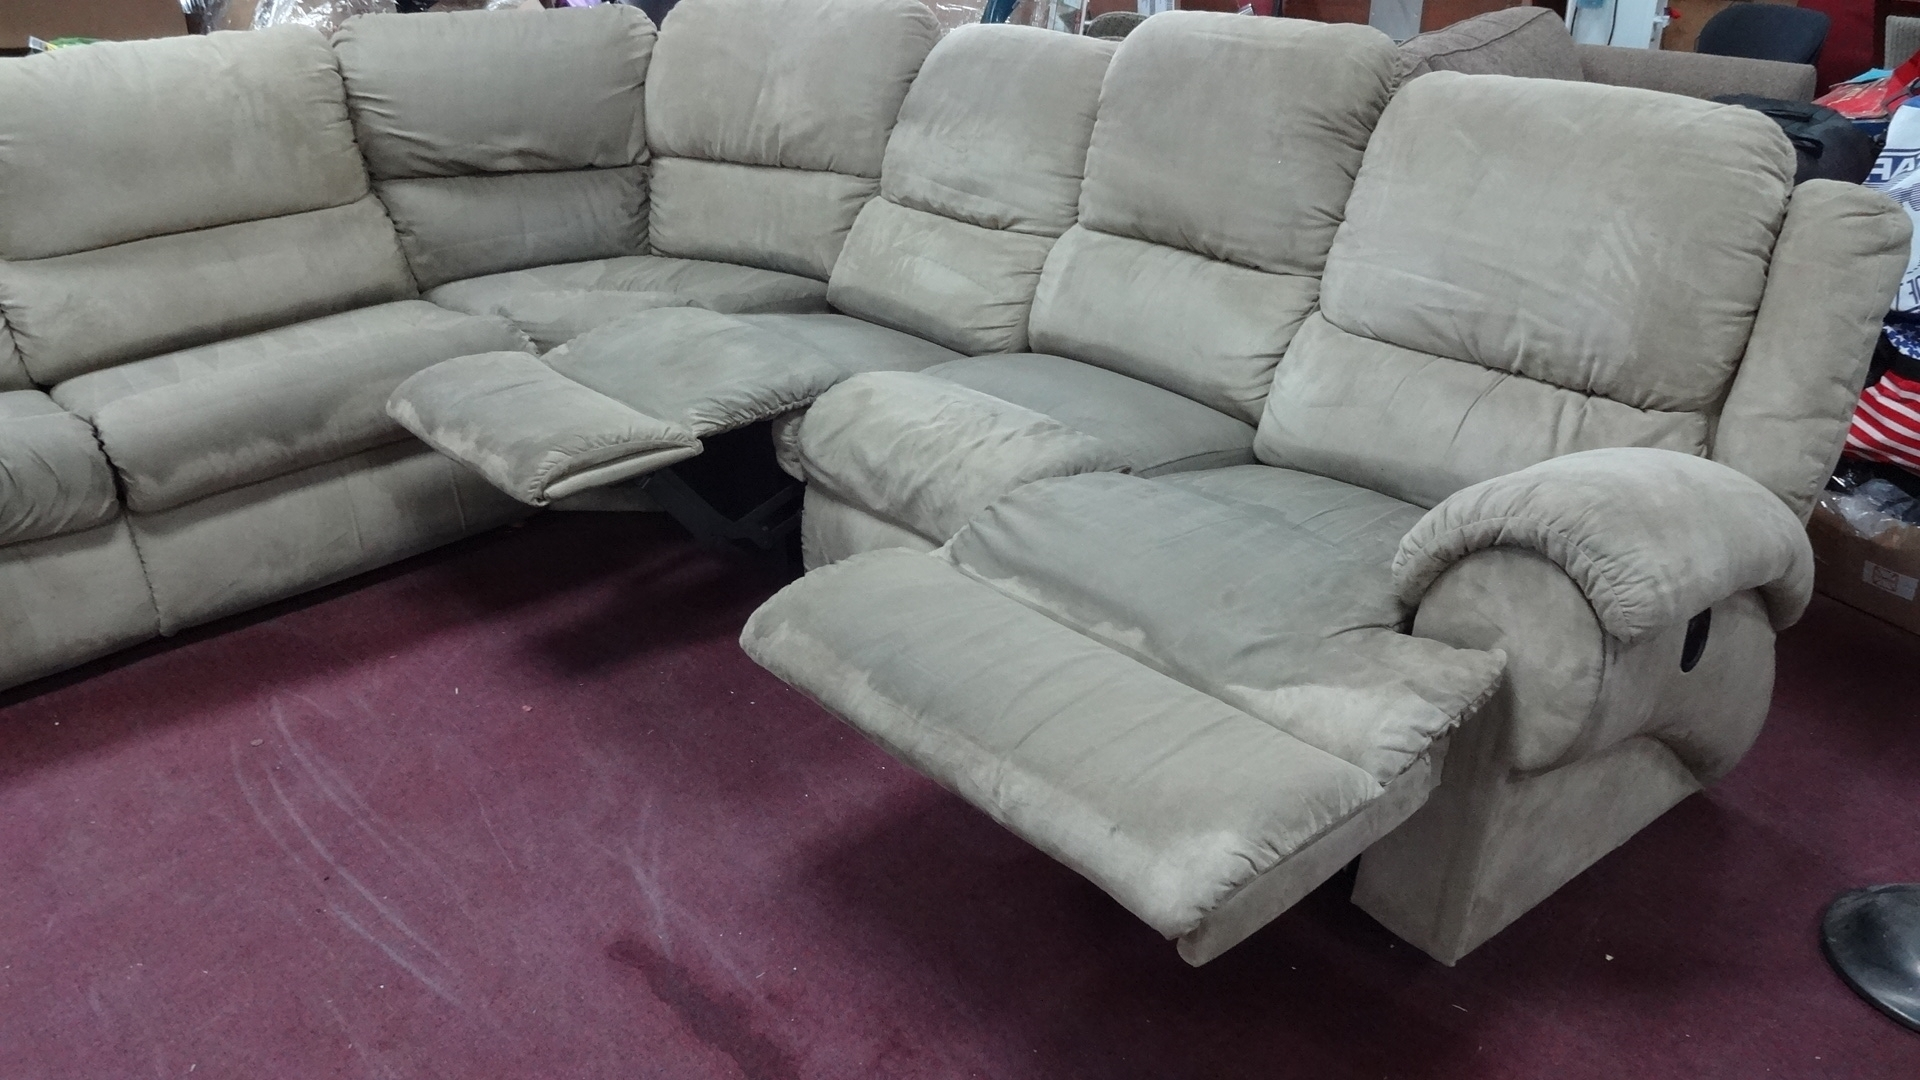 Trendy Sectional Sofas At Brick Intended For La Z Boy Sectional Sofa Bed • Sofa Bed (View 14 of 15)